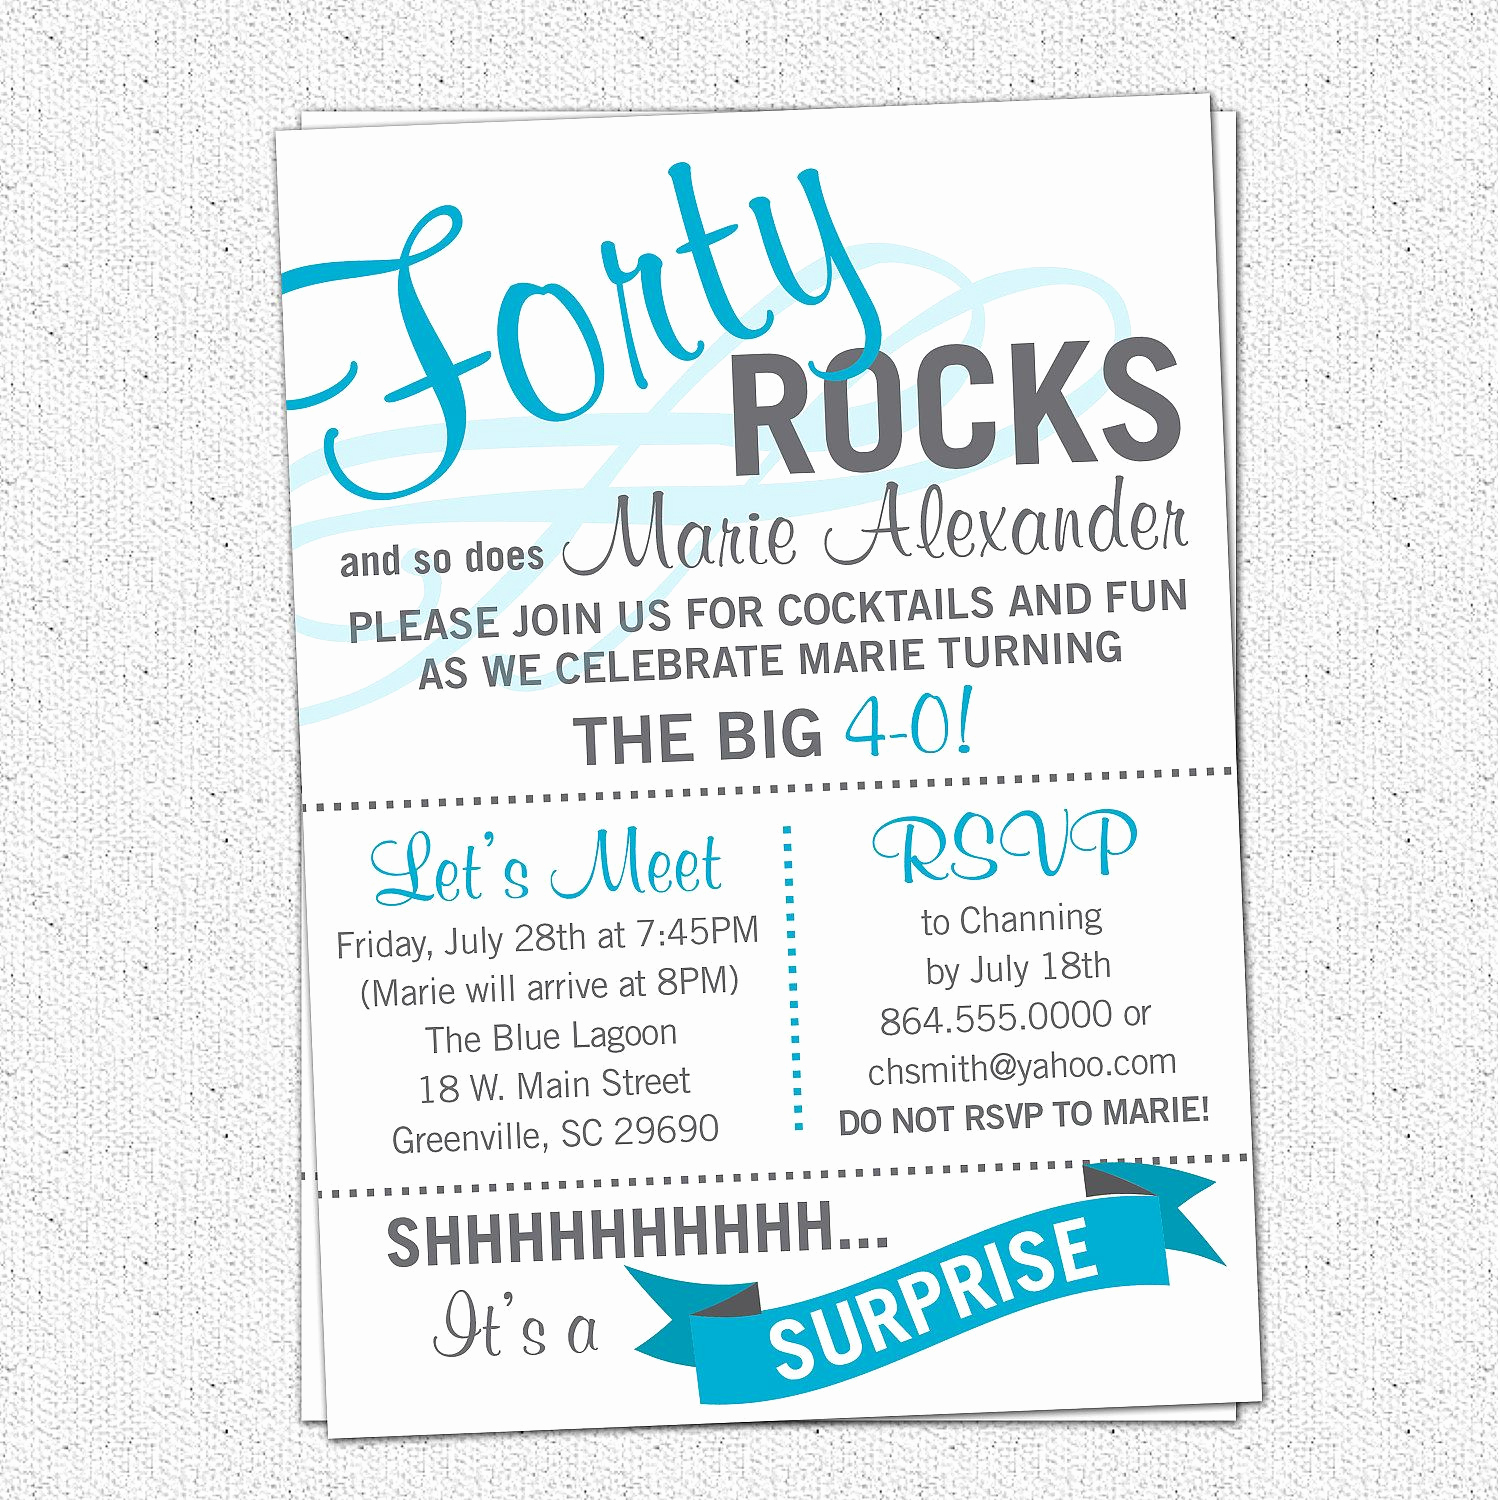 40th Birthday Party Invitation Wording Unique Printable forty Rocks Birthday Party Bash Invitation